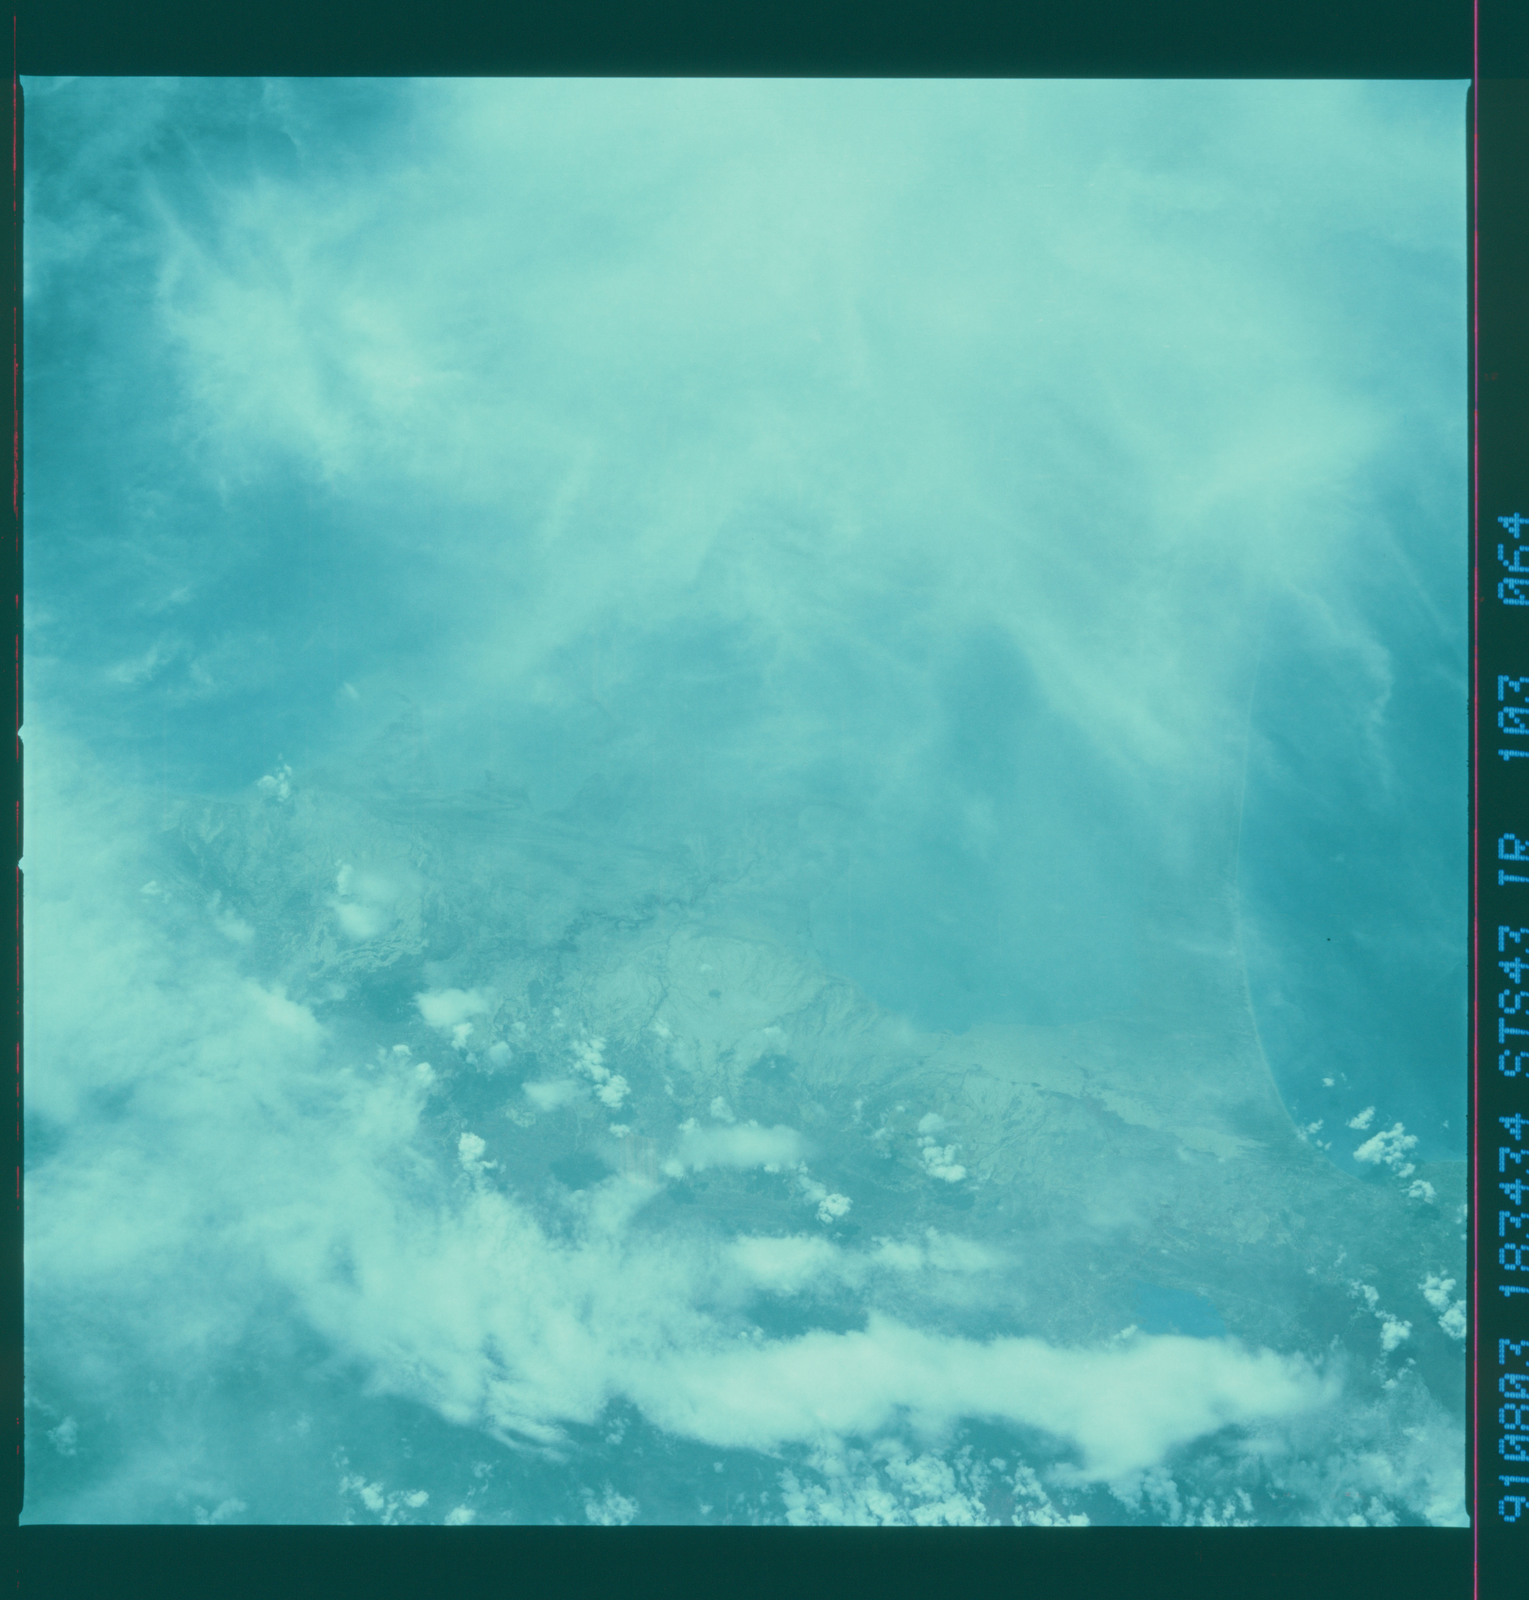 S43-103-064 - STS-043 - STS-43 earth observations